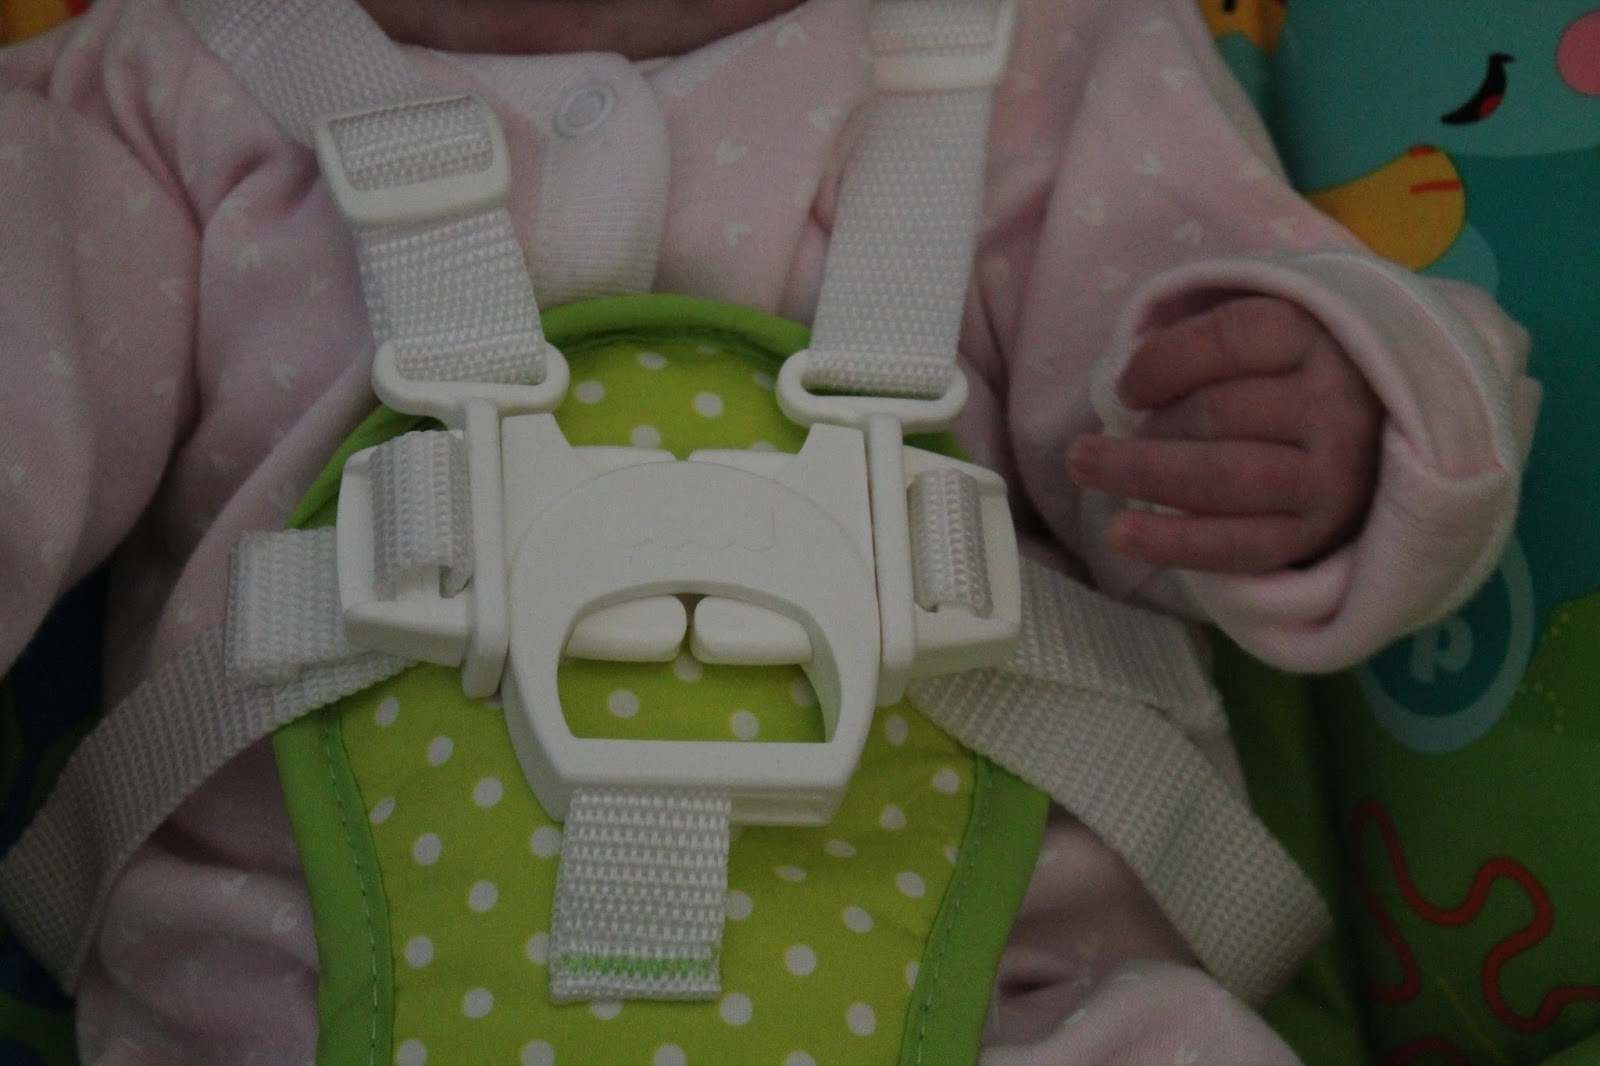 Fisher Price Seat/Swing Five Point Restraint.